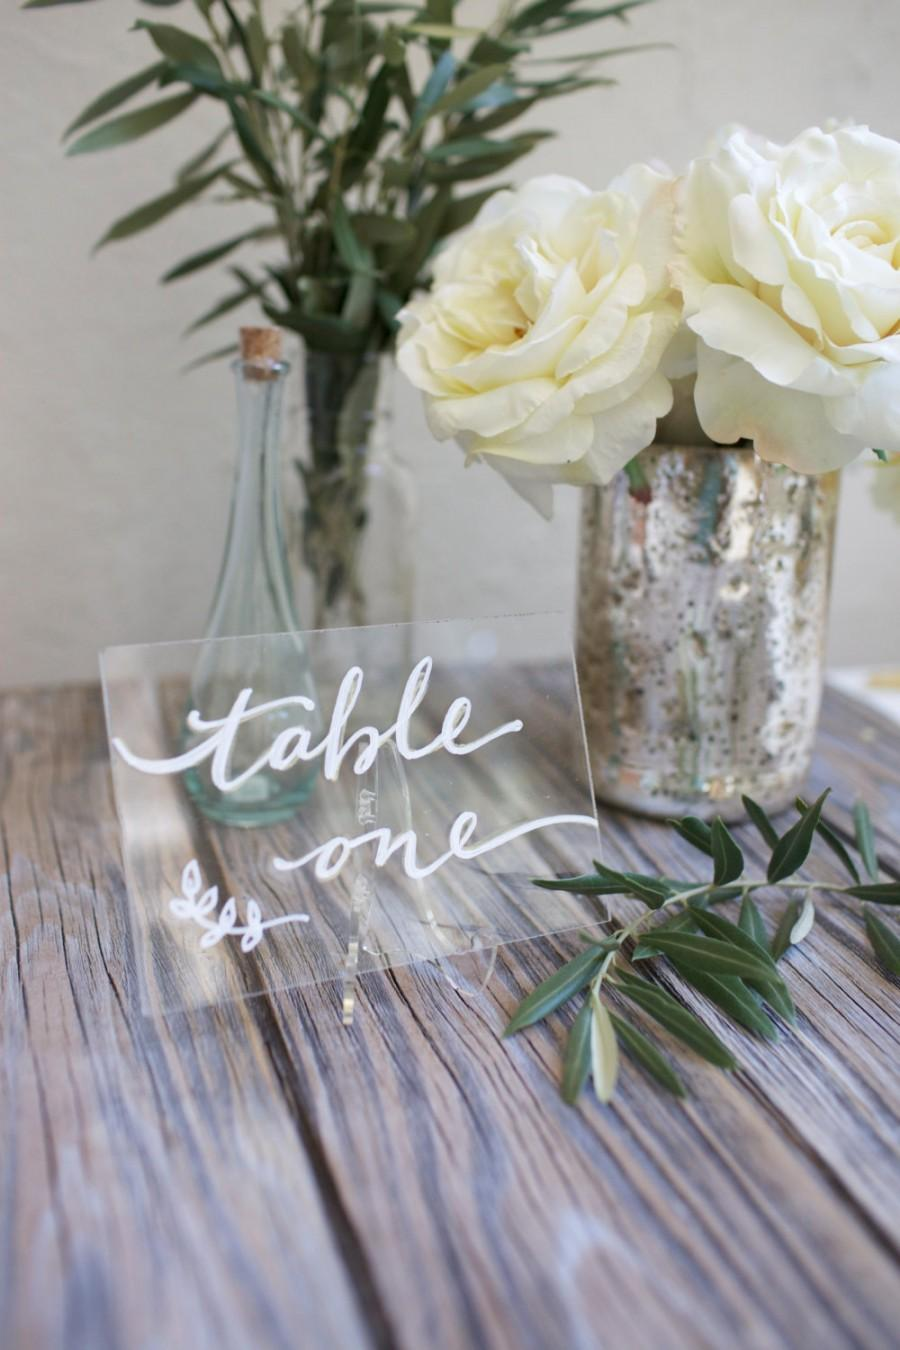 "Wedding - Acrylic plexiglass table numbers or names. Size 4 x 6"". Clear or metallic. Custom designed for your unique wedding style. Any font or style"